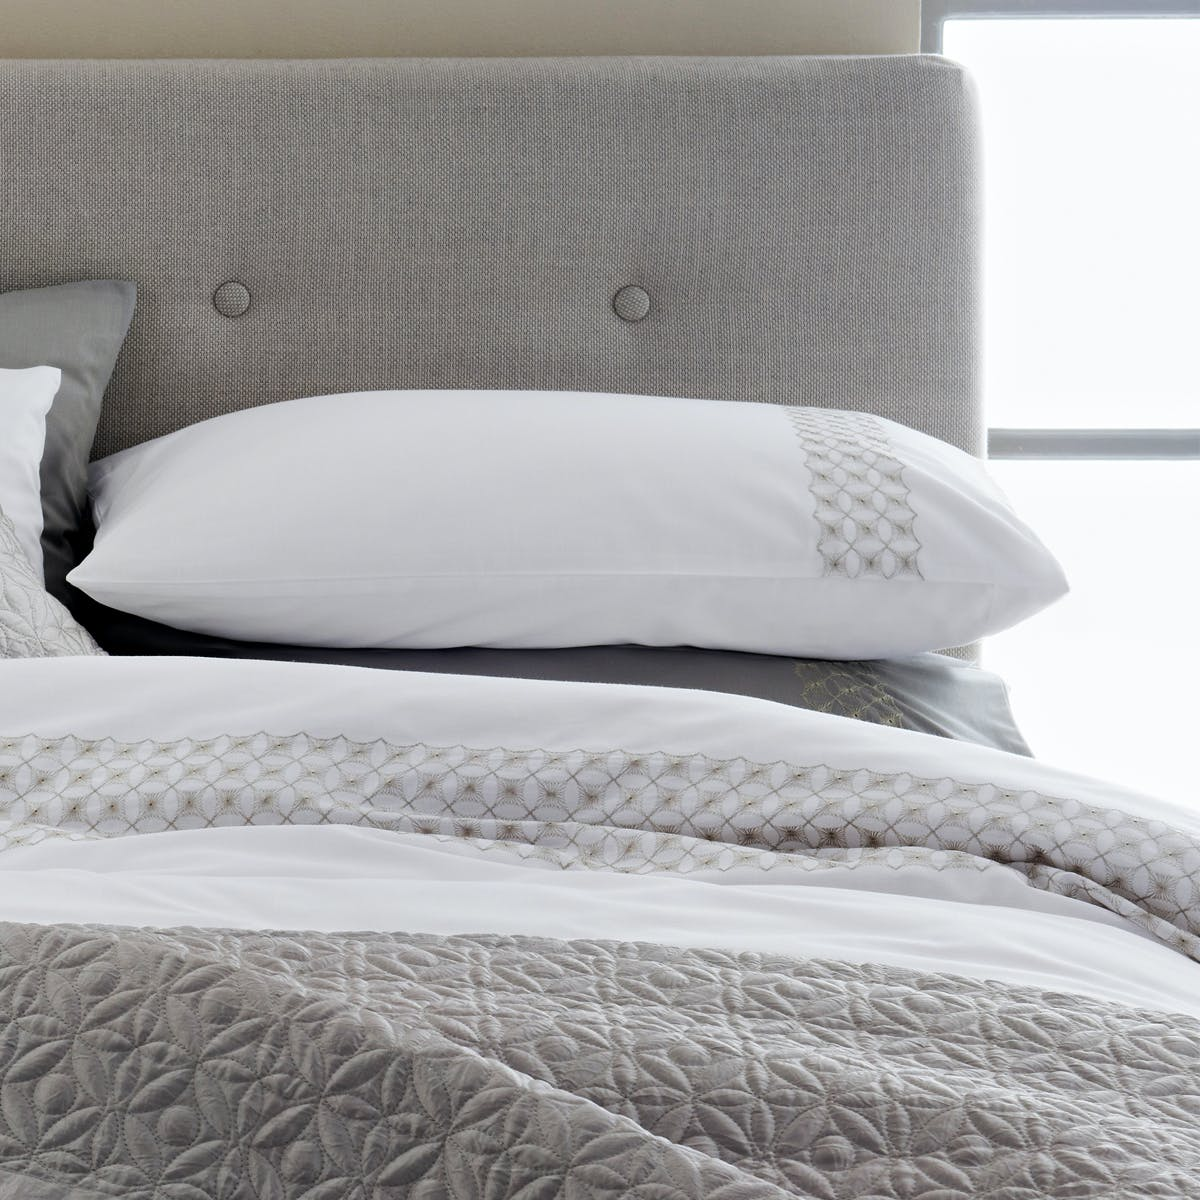 When Buying Your Bed Linen, All You Need To Remember Is That The Higher The  Number, The Smoother, Softer And More Luxurious The Fabric Will Feel.